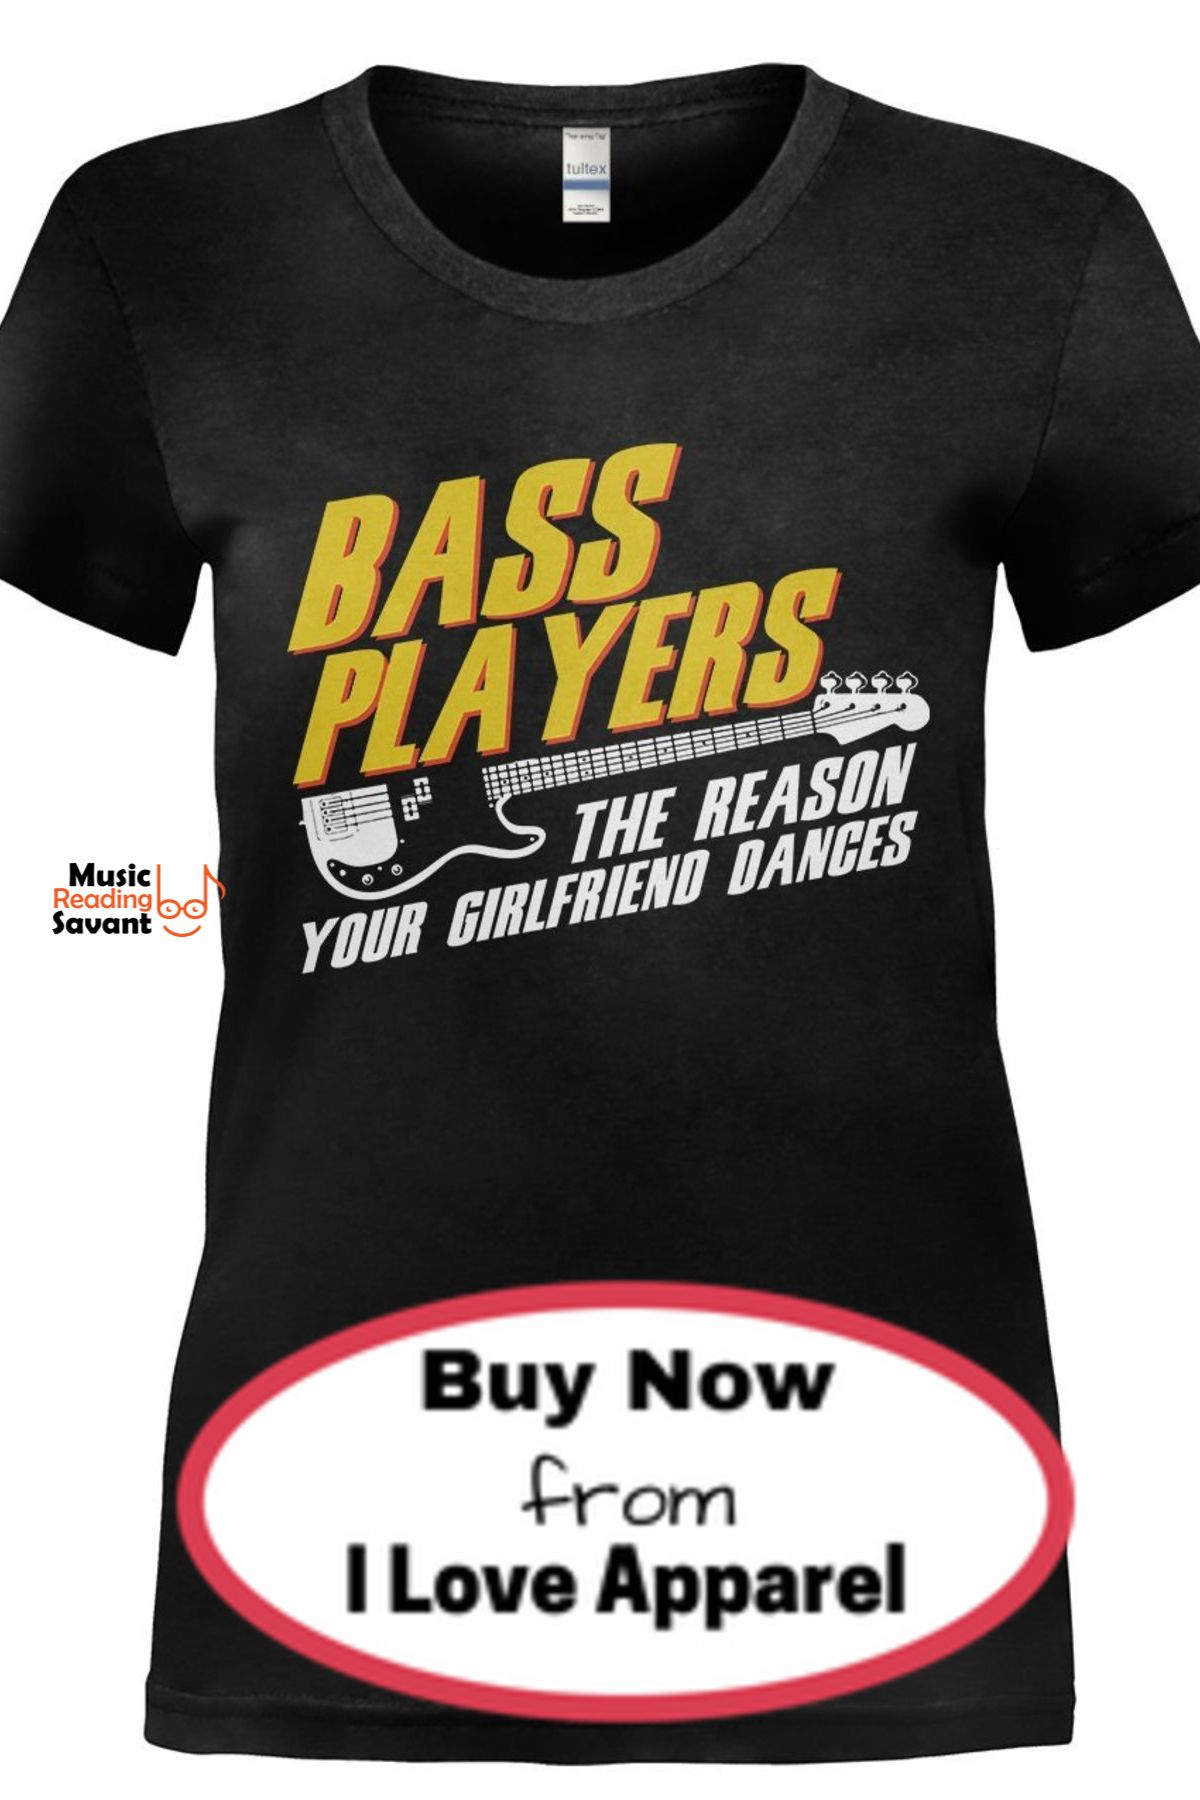 I Love This Funny T Shirt With A Hilarious Bass Guitar